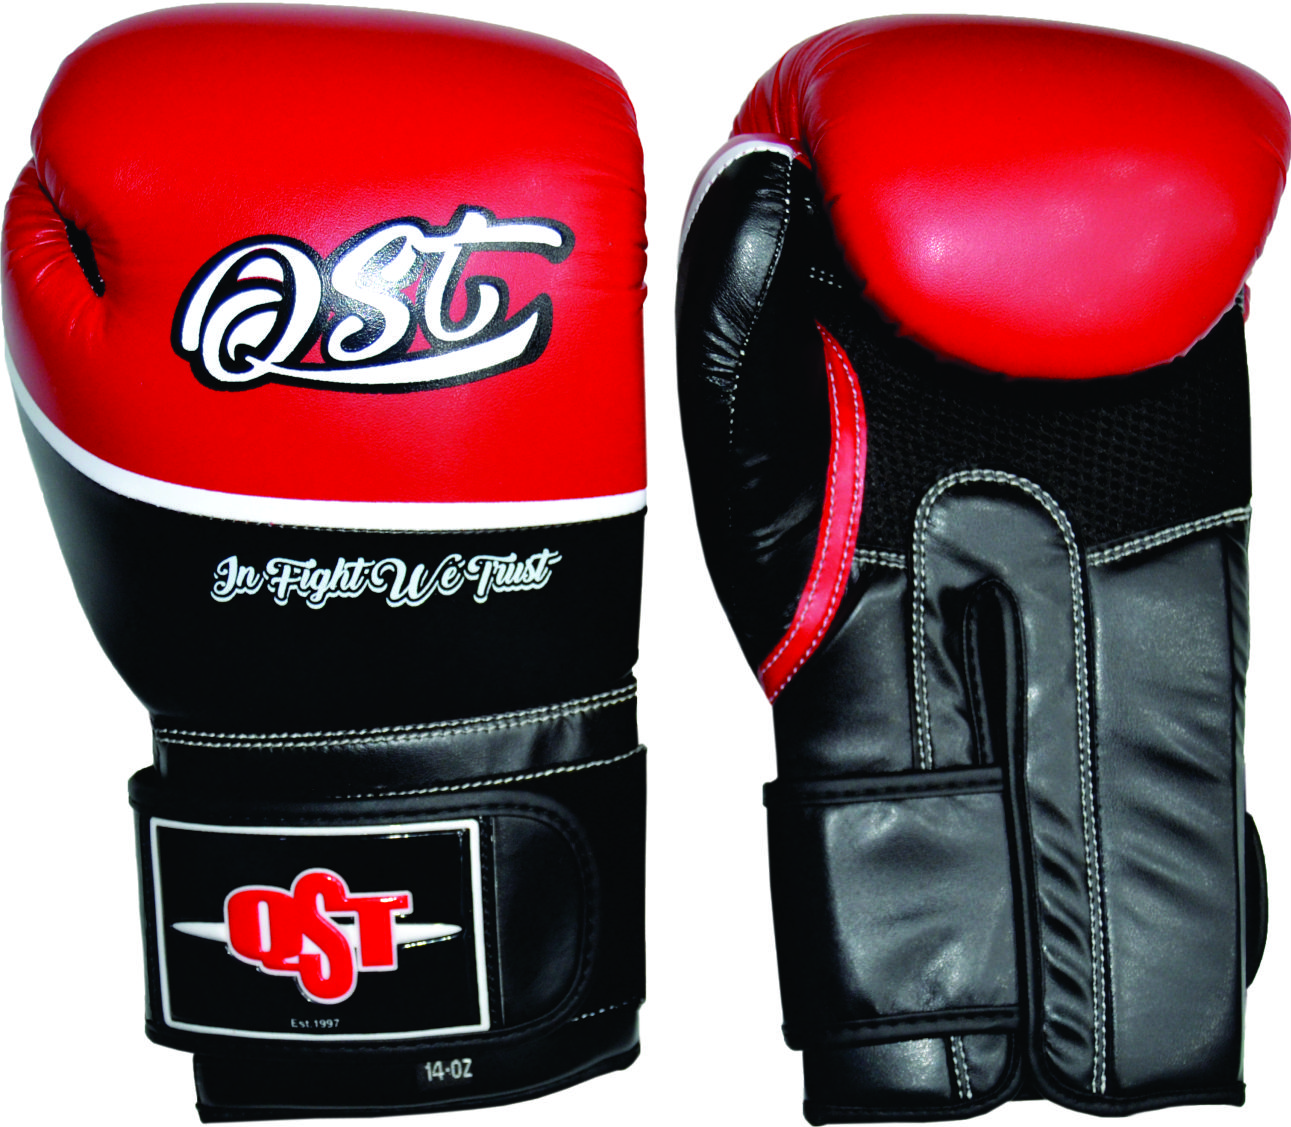 Training Boxing Gloves - PRG-2022